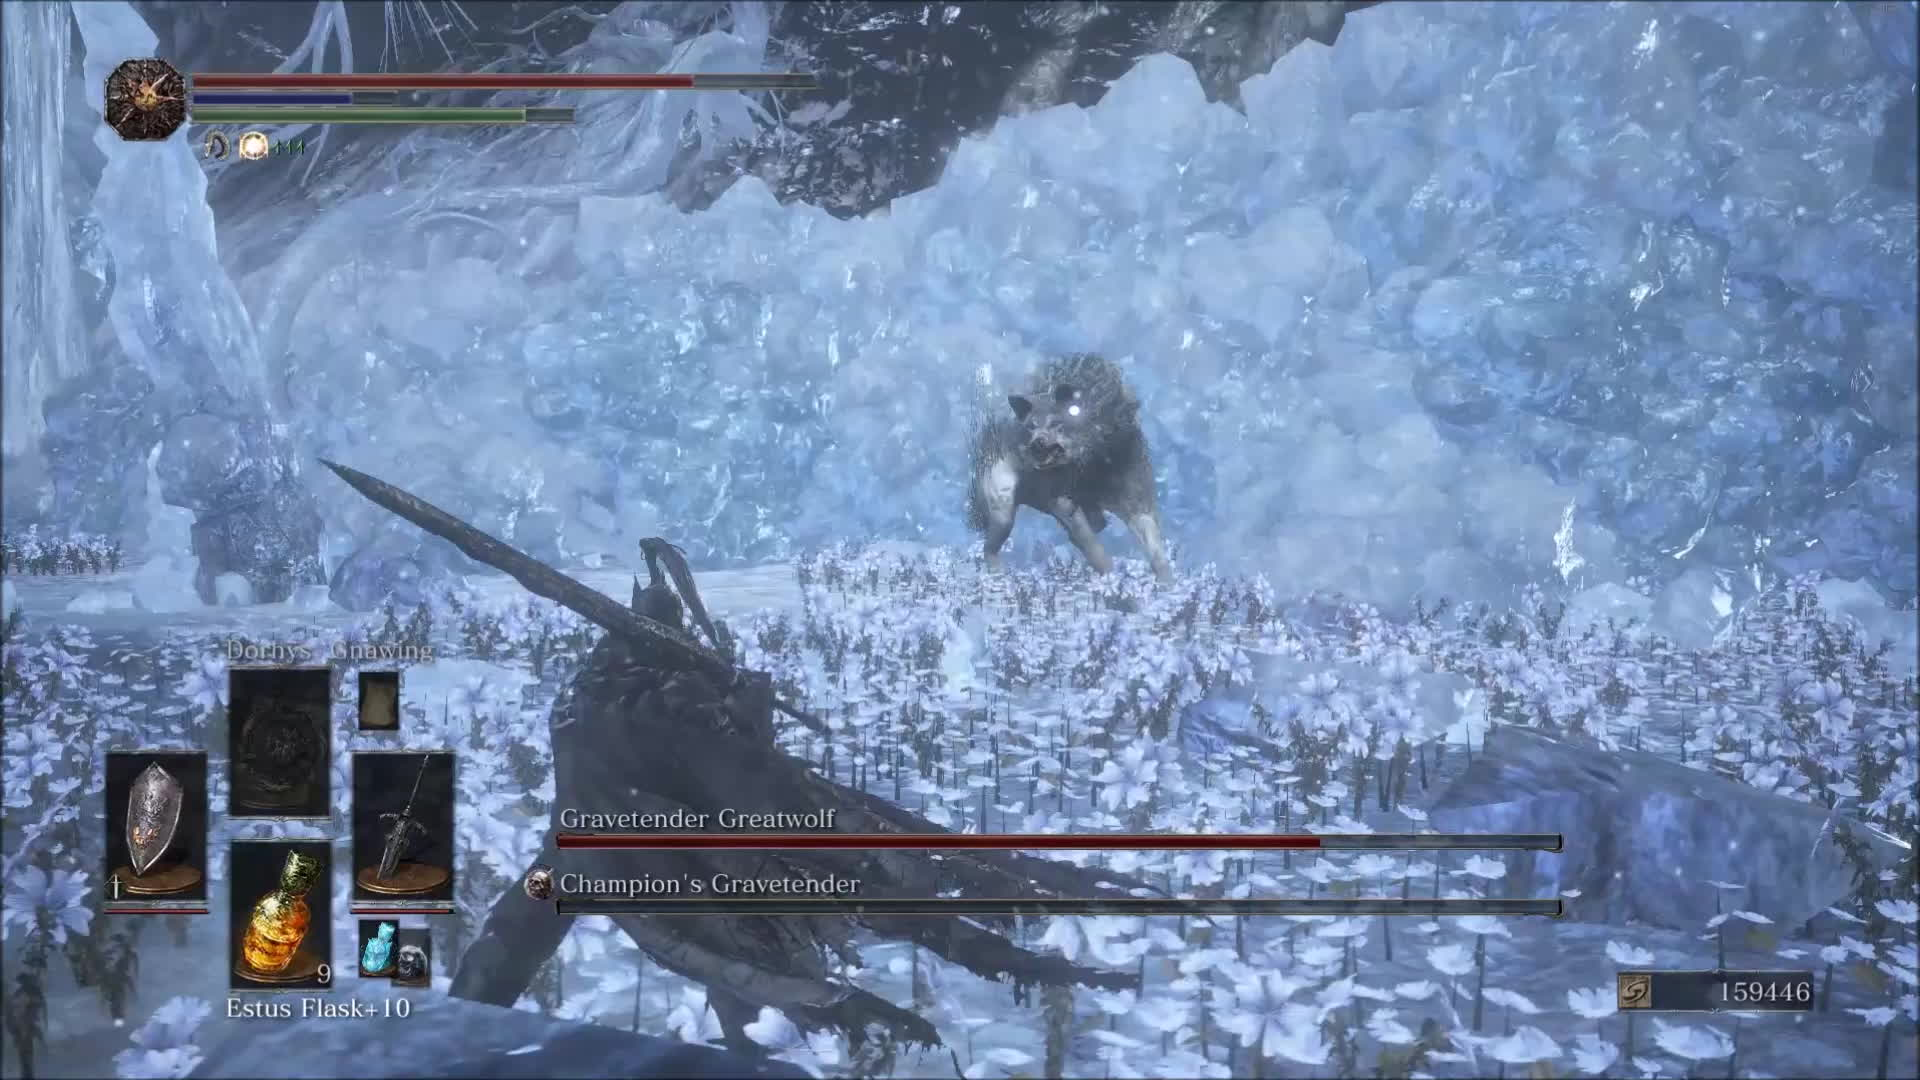 darksouls3, No! That's a Bad Doggy! You sit down now! GIFs